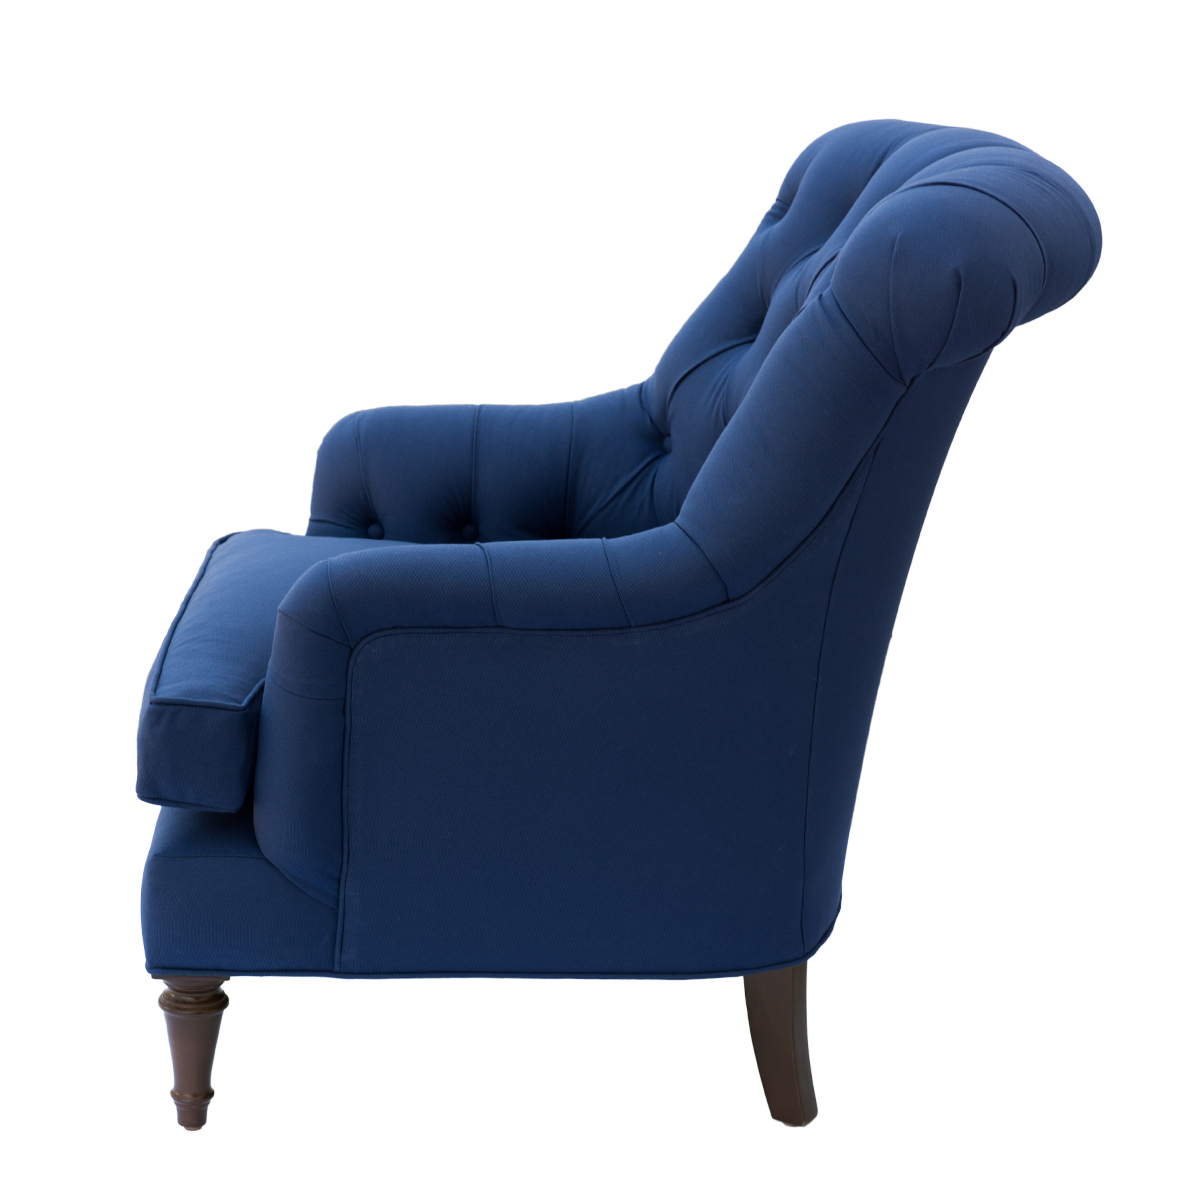 Tiffany Occasional Chair3